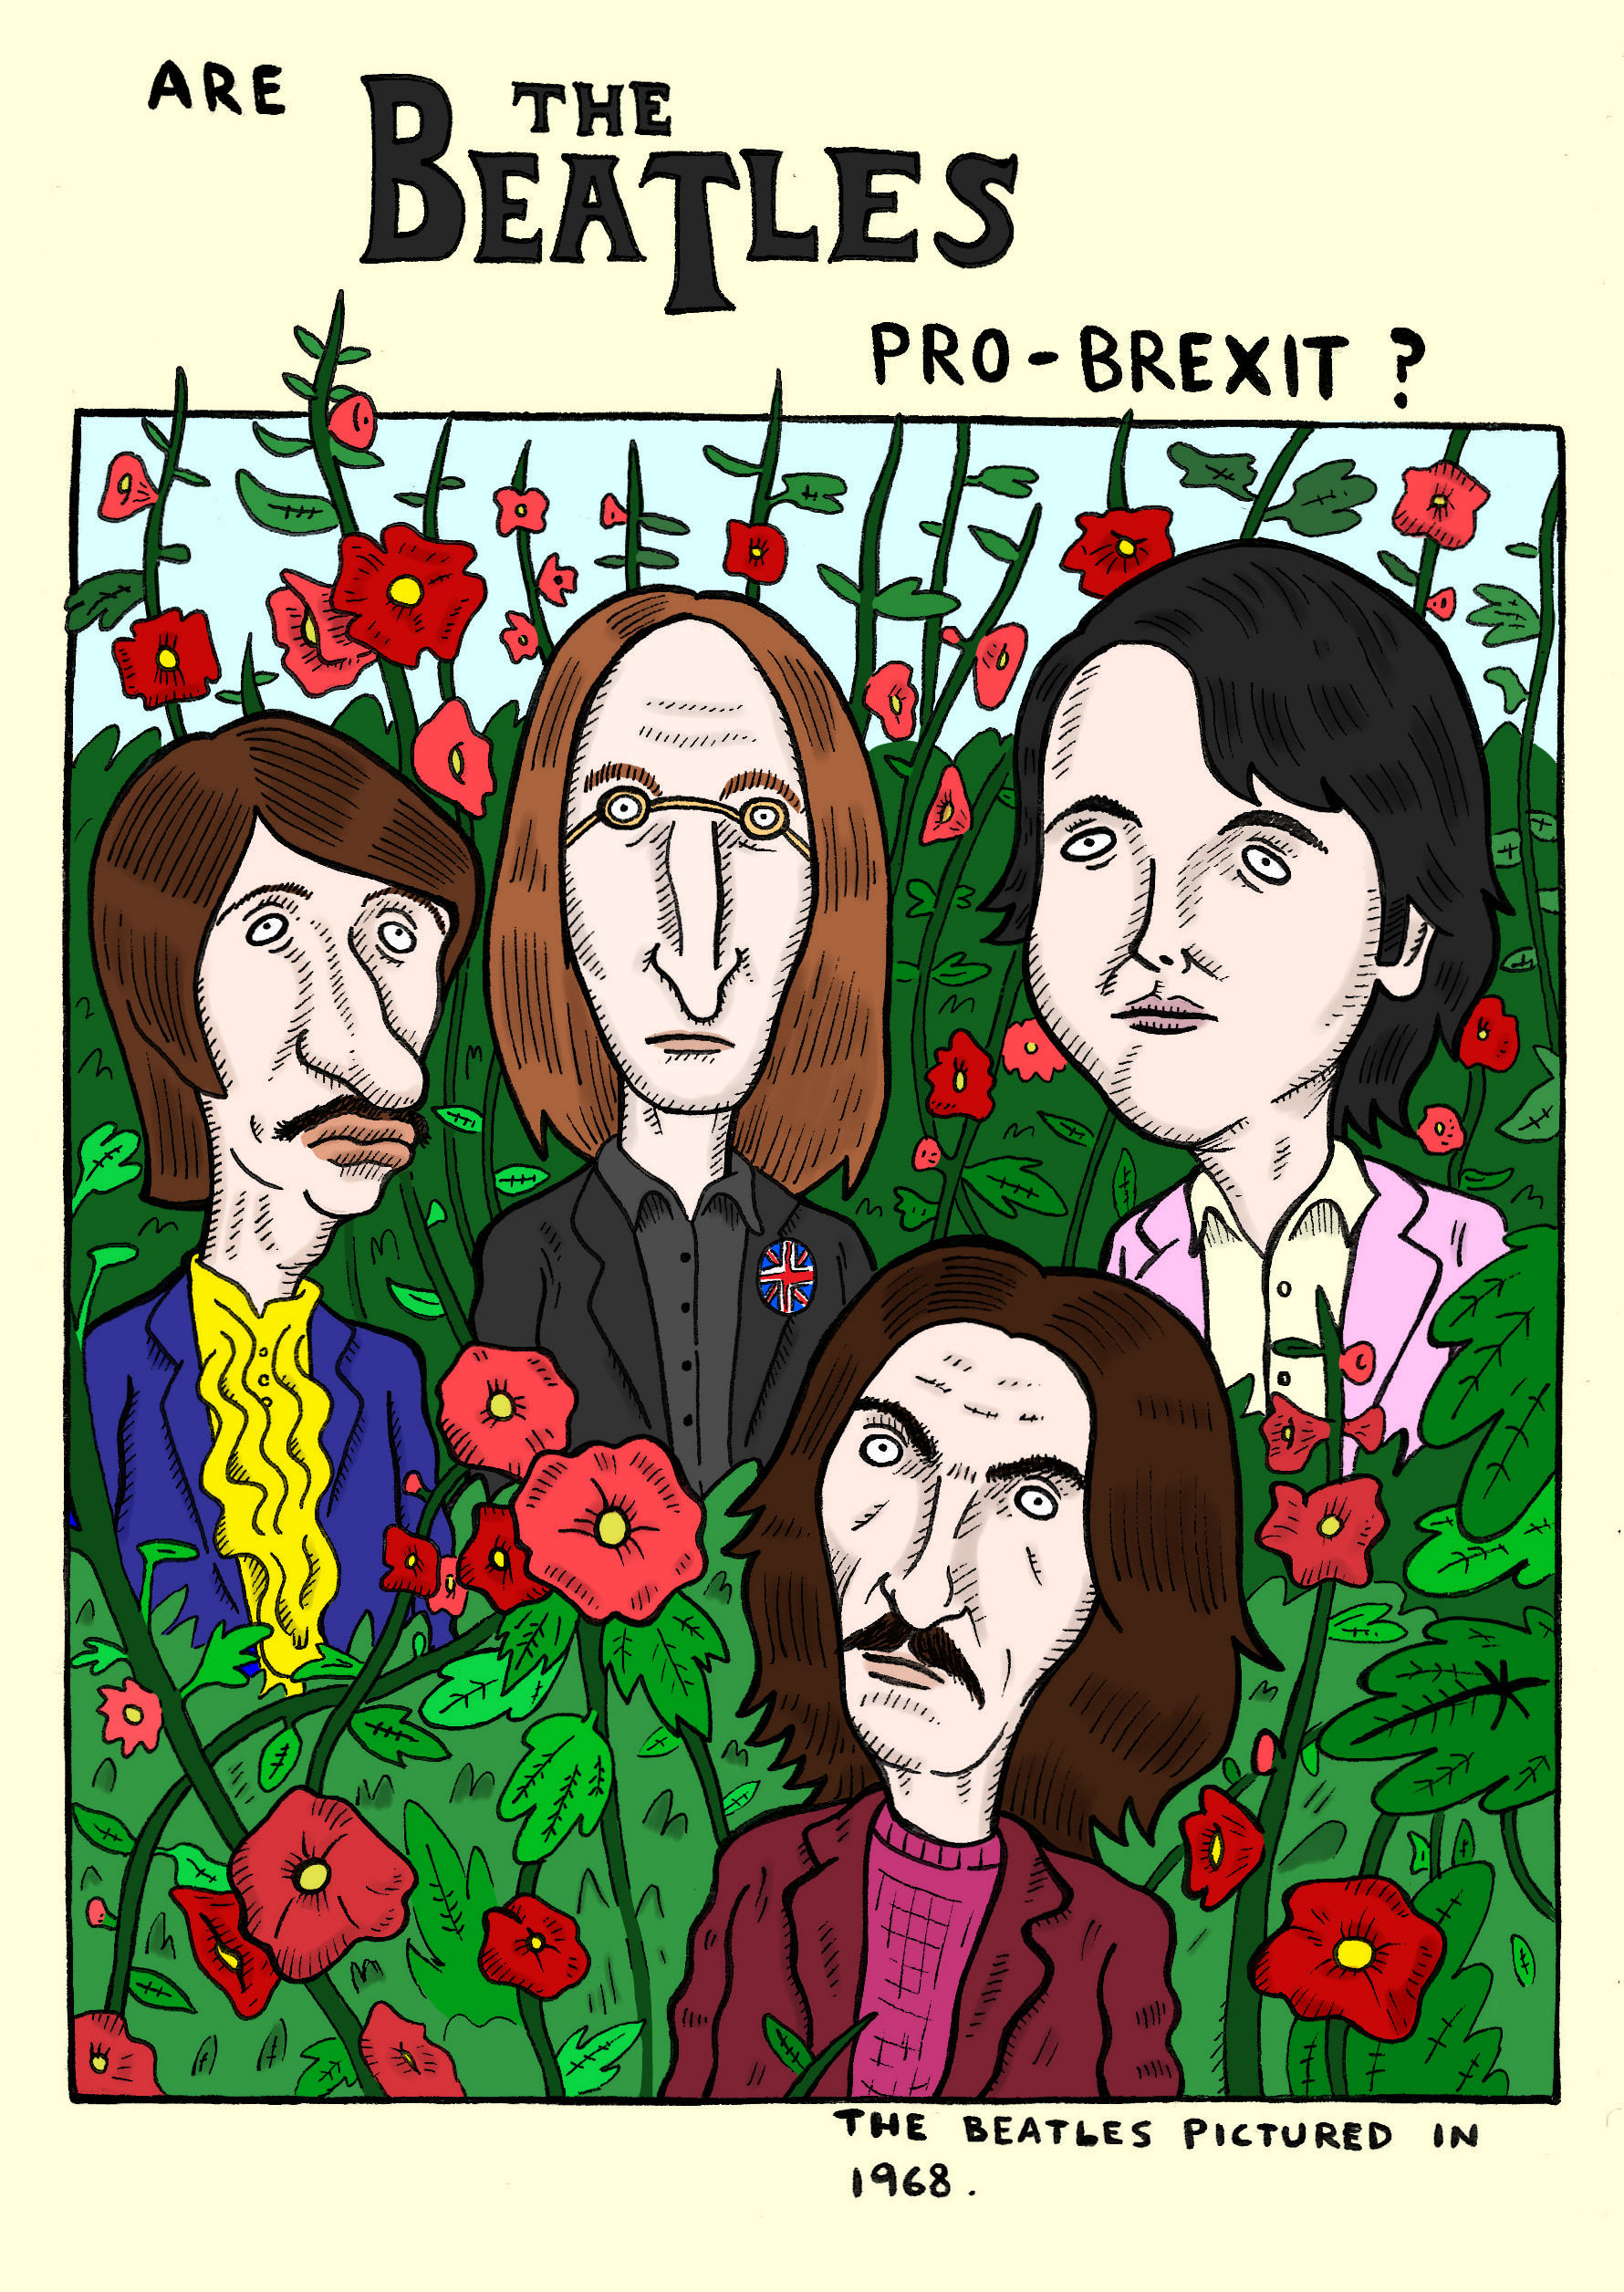 Are The Beatles Pro-Brexit?